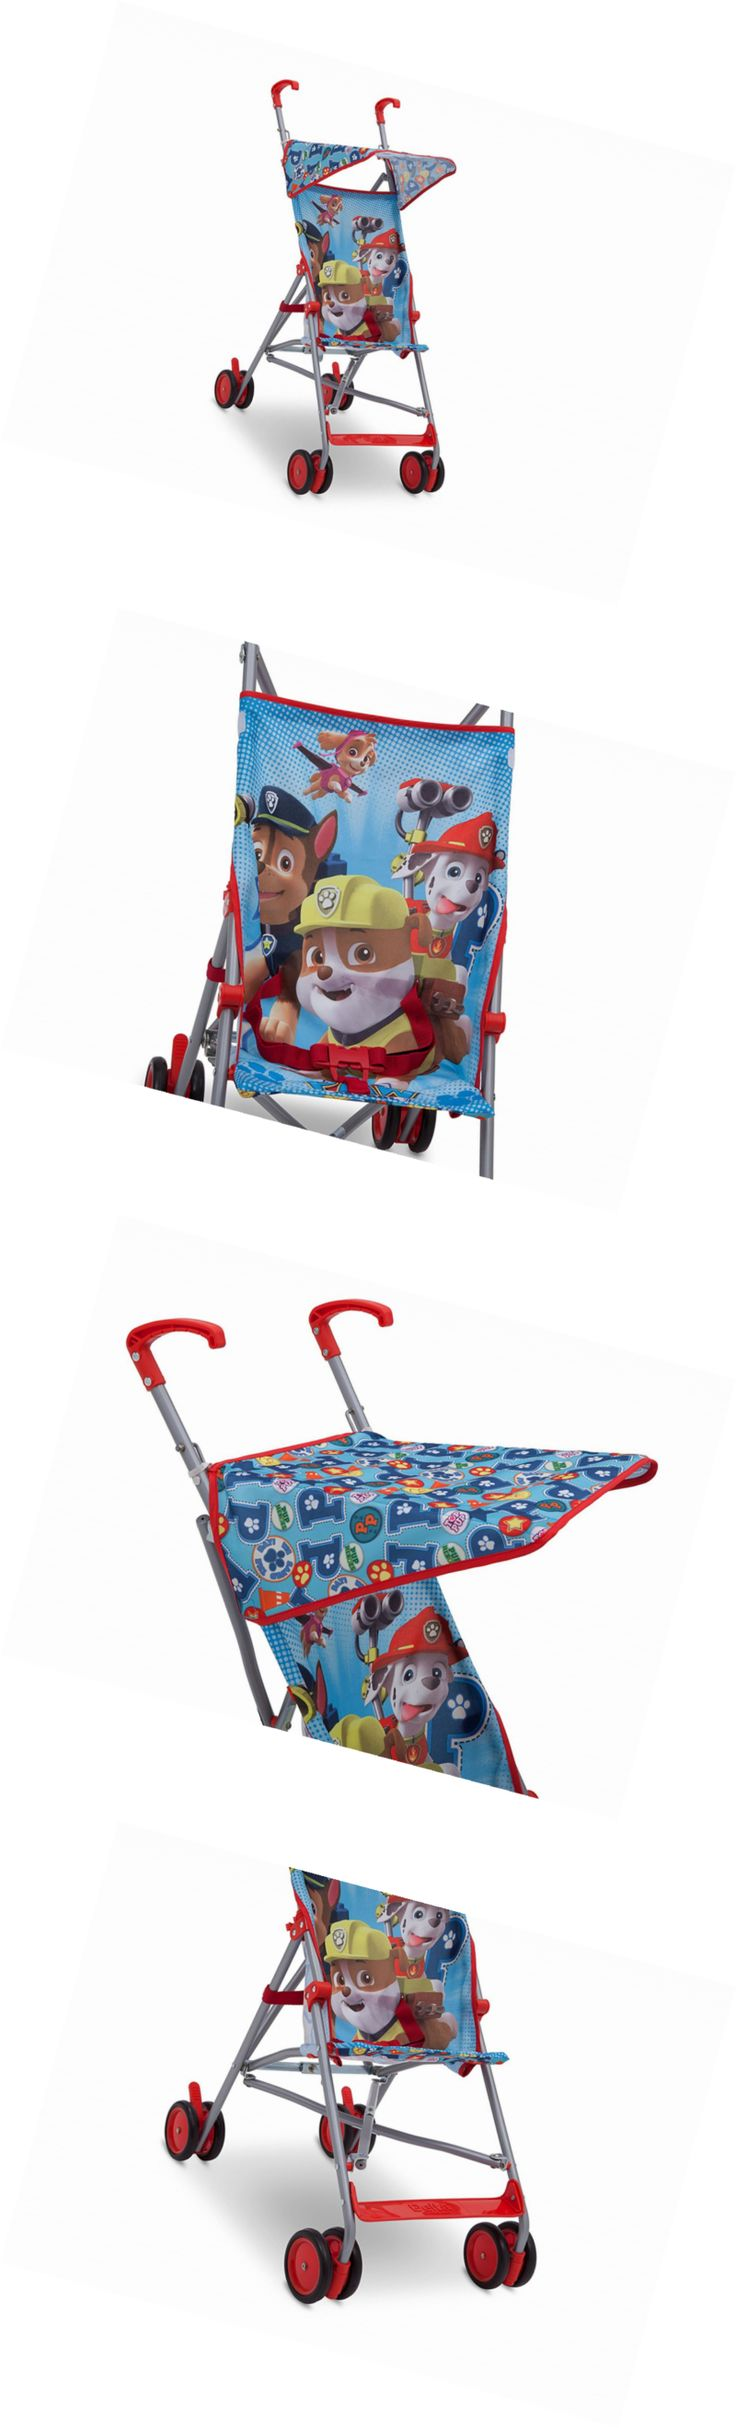 Designed le chien savant desk with chair for magis junior hipster - Sofas And Armchairs 134648 Delta Children Umbrella Stroller Nick Jr Paw Patrol